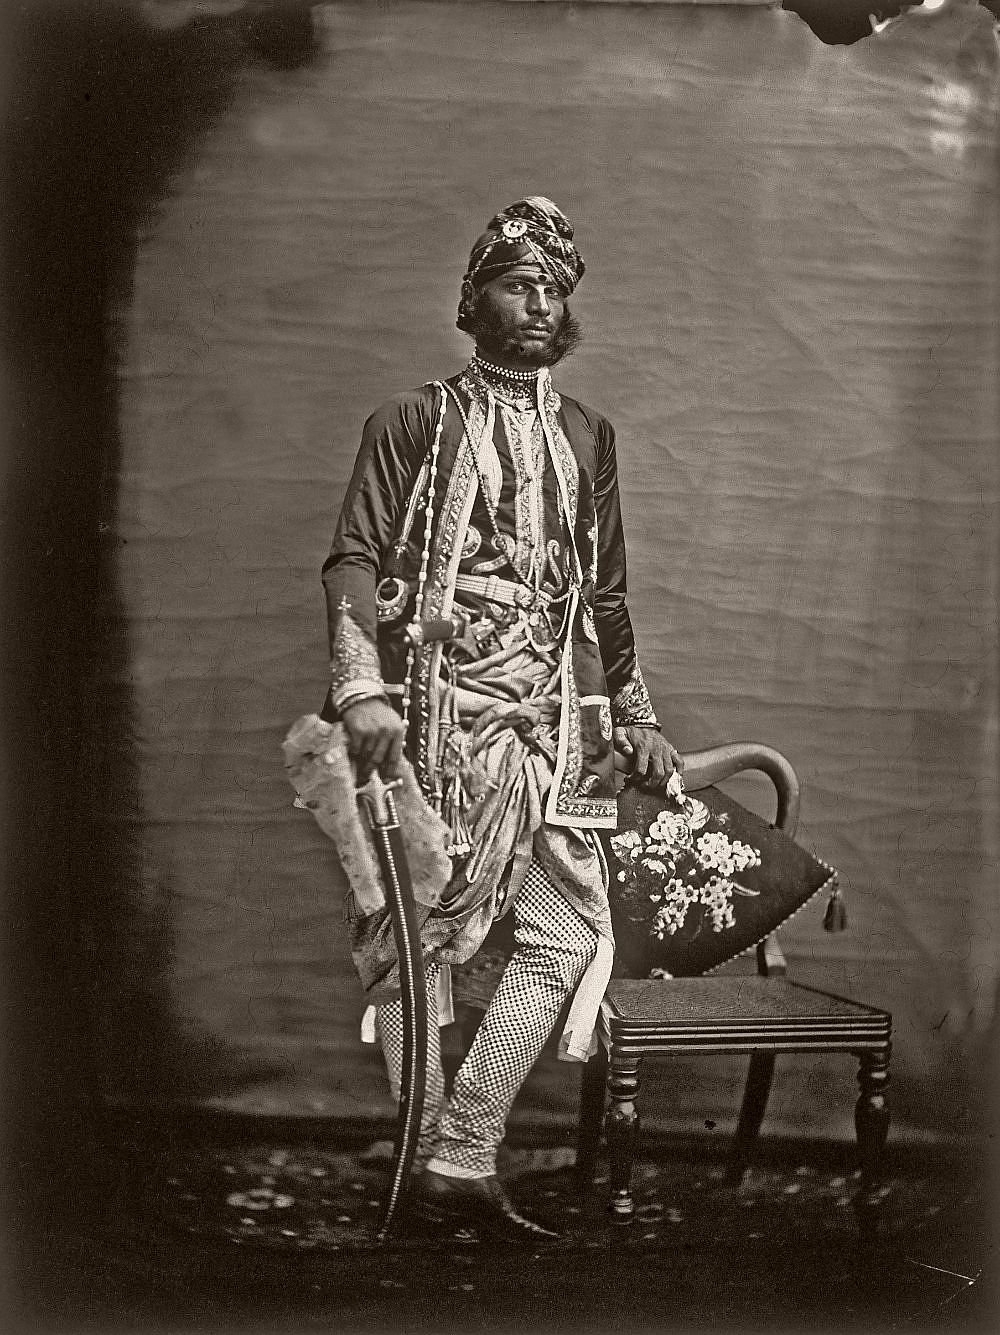 Full portrait of a noteworthy man in the royal palace of Jaipur, India, 1857–1865 (Photo by Maharaja Ram Singh III/Alinari via Getty Images)